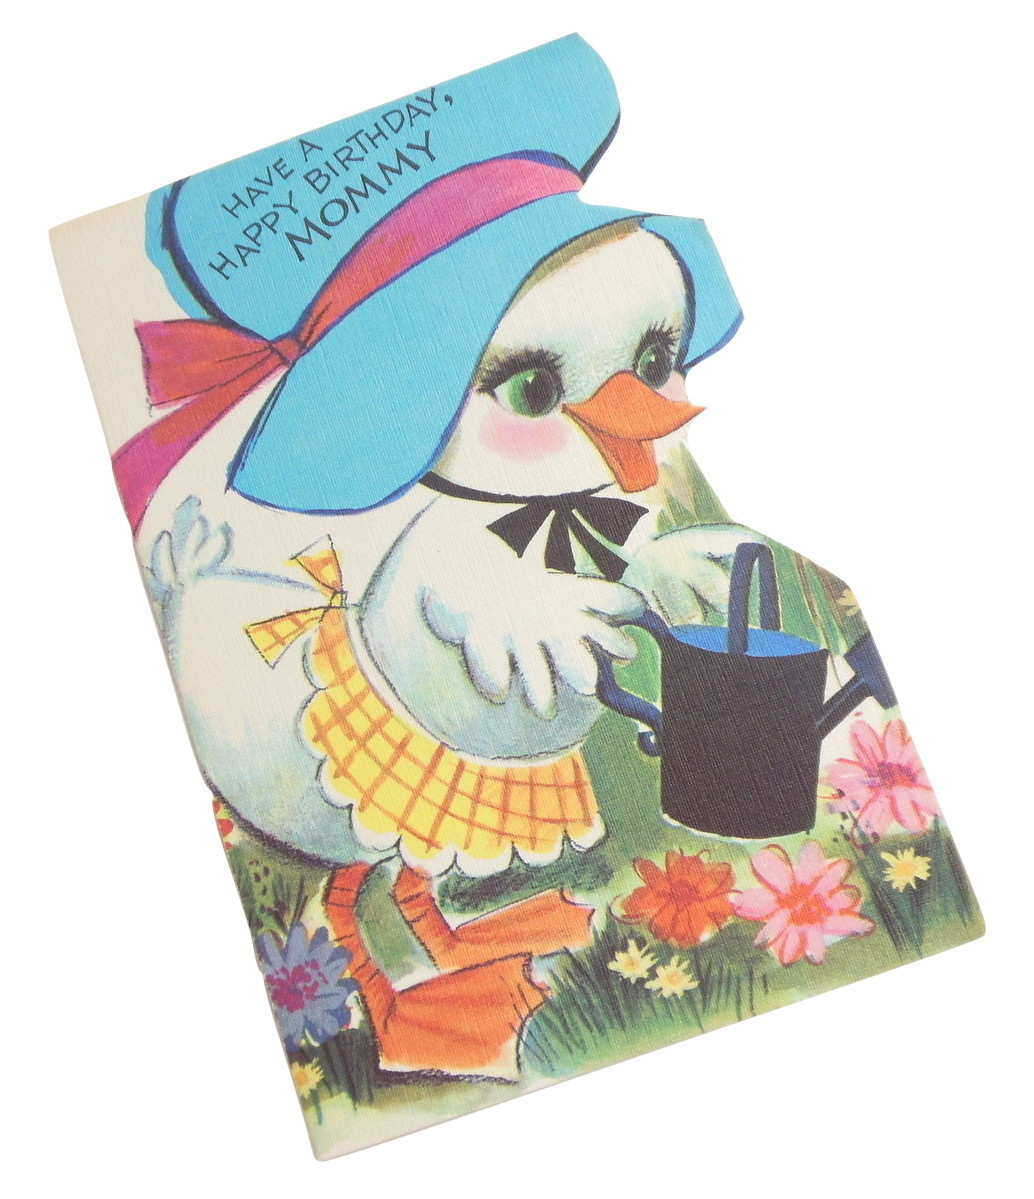 American greetings greeting card 80 listings vintage happy birthday to mommy greeting card die cut duck garden scene 595 m4hsunfo